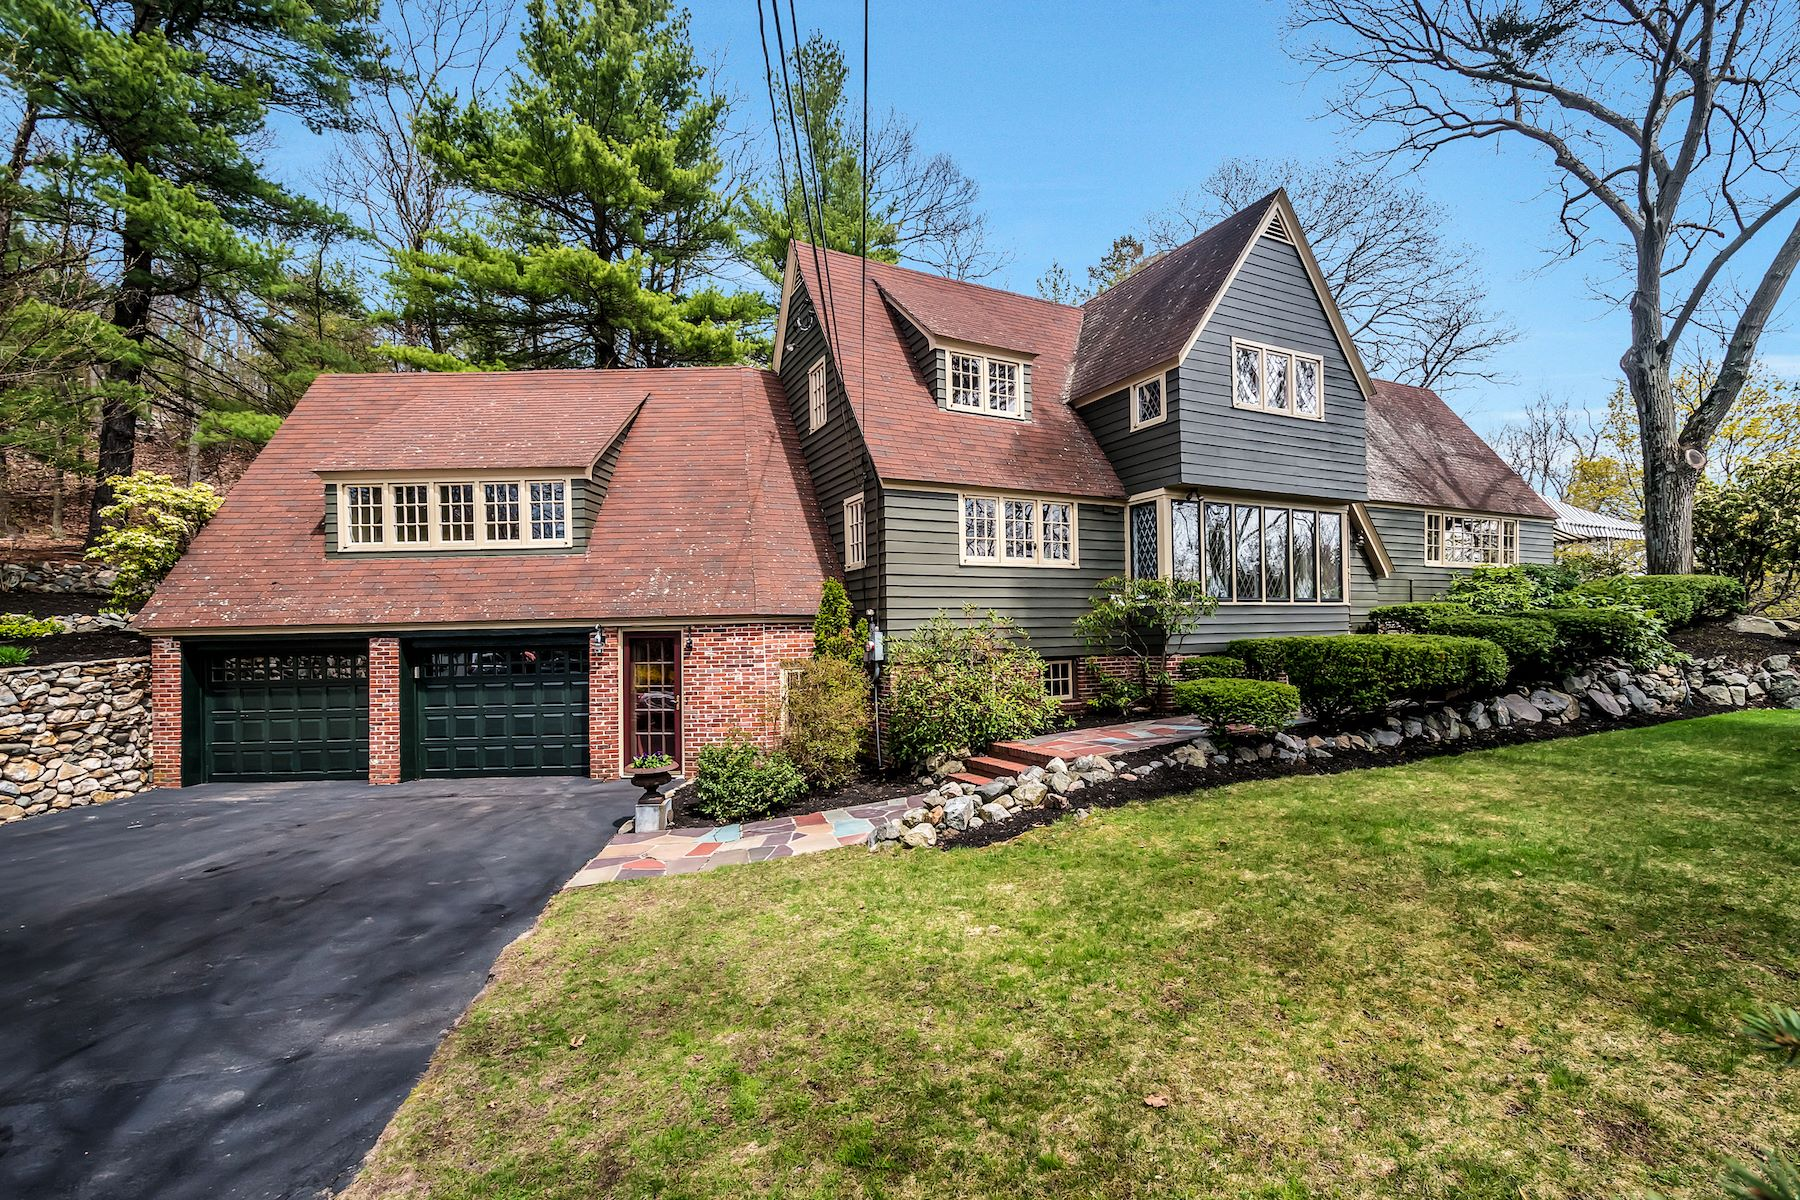 Moradia para Venda às Beautiful Colonial nestled on an acre+ of land 129 High Street Winchester, Massachusetts, 01890 Estados Unidos